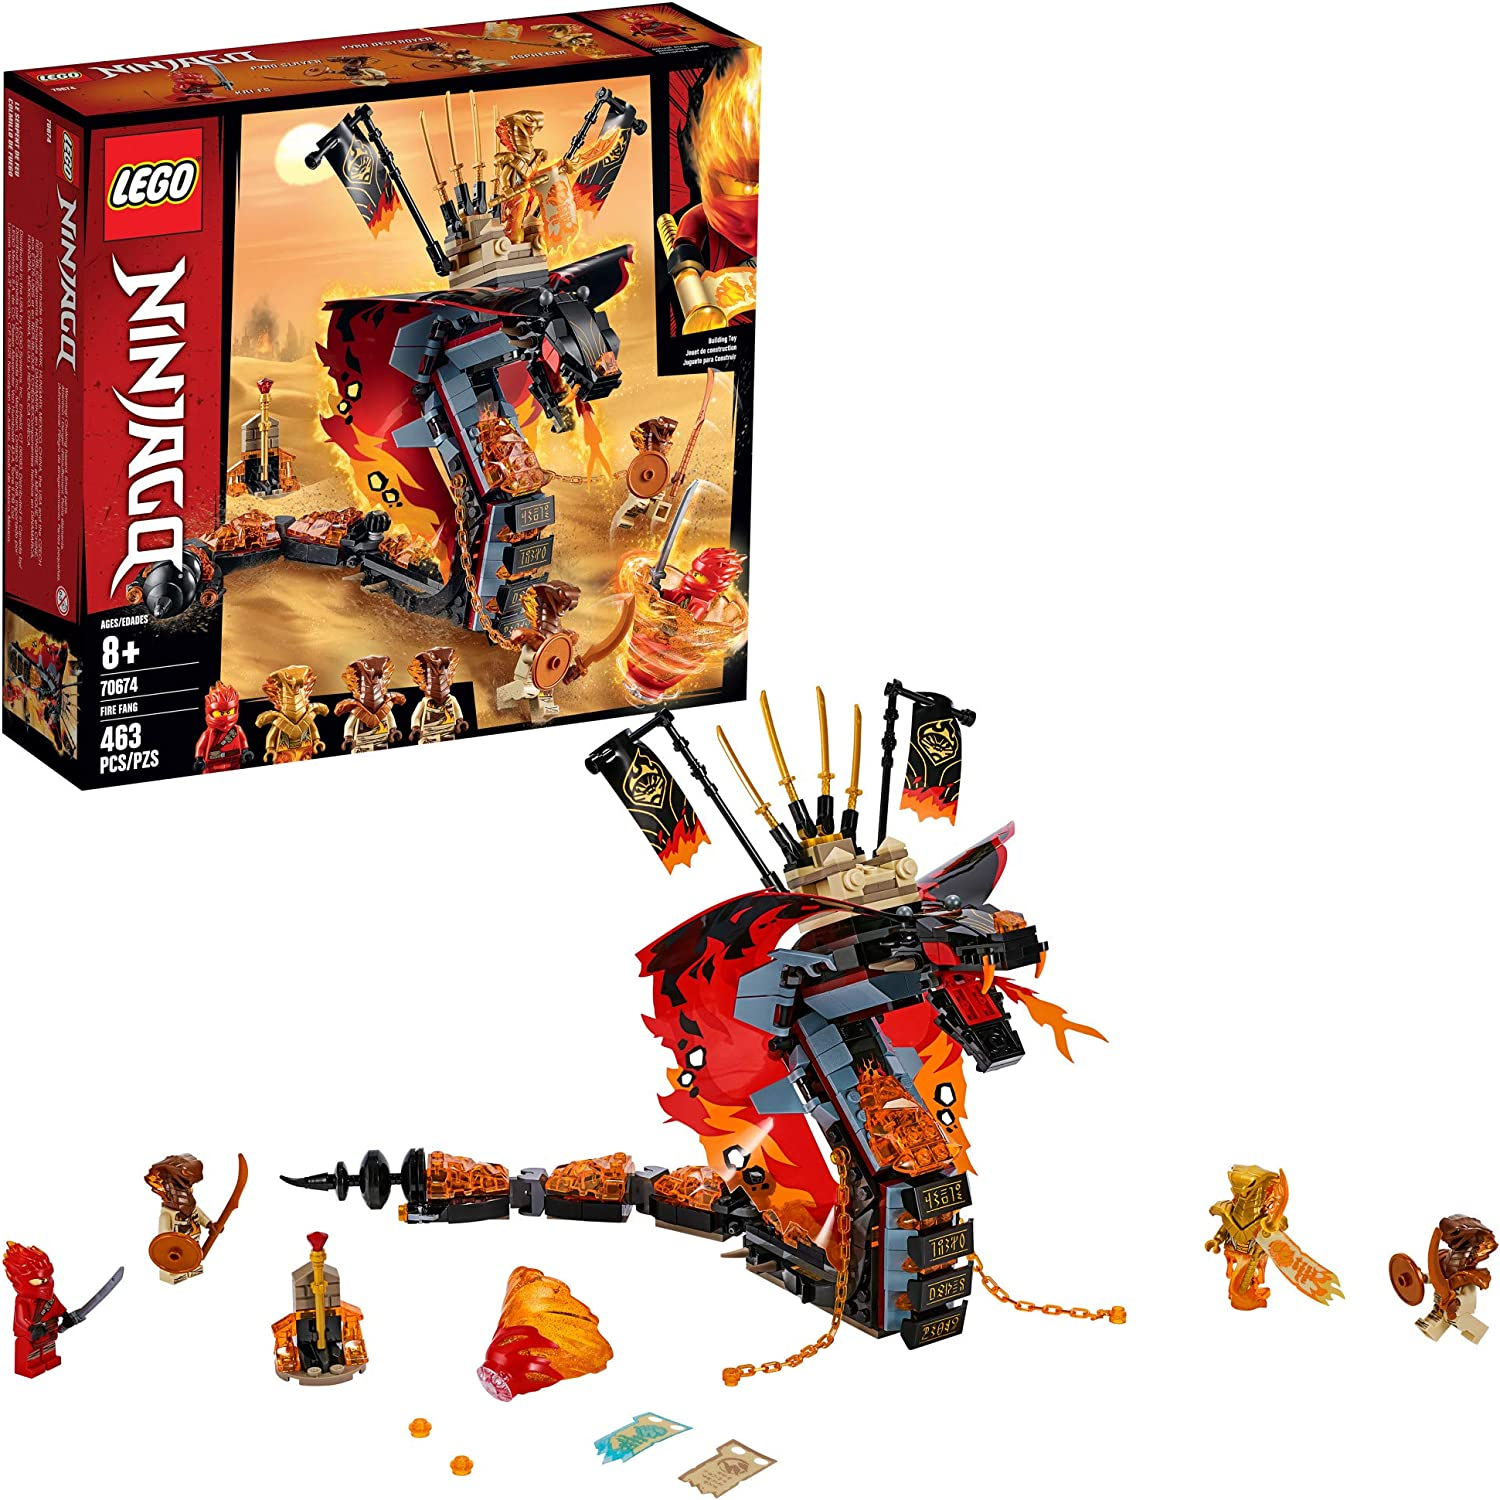 LEGO Ninjago Fire Fang 70674 Snake Action Toy Building Set with Stud Shooters and Ninja Minifigures Characters, Perfect for Group Play(463 Pieces)